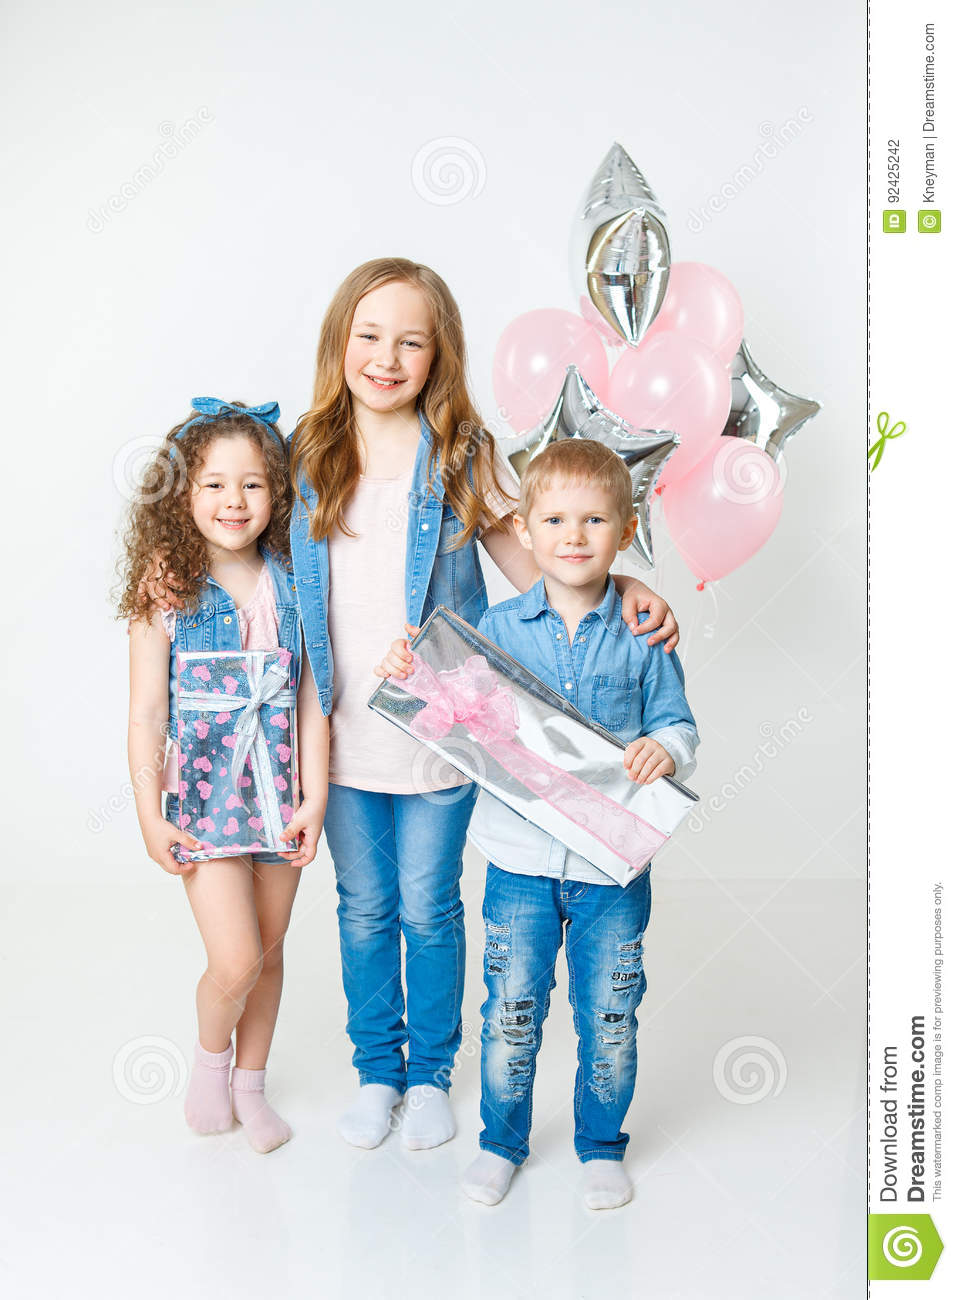 Pretty kids on birthday party stay with presents in jeans clothes. Balloons. Smiling